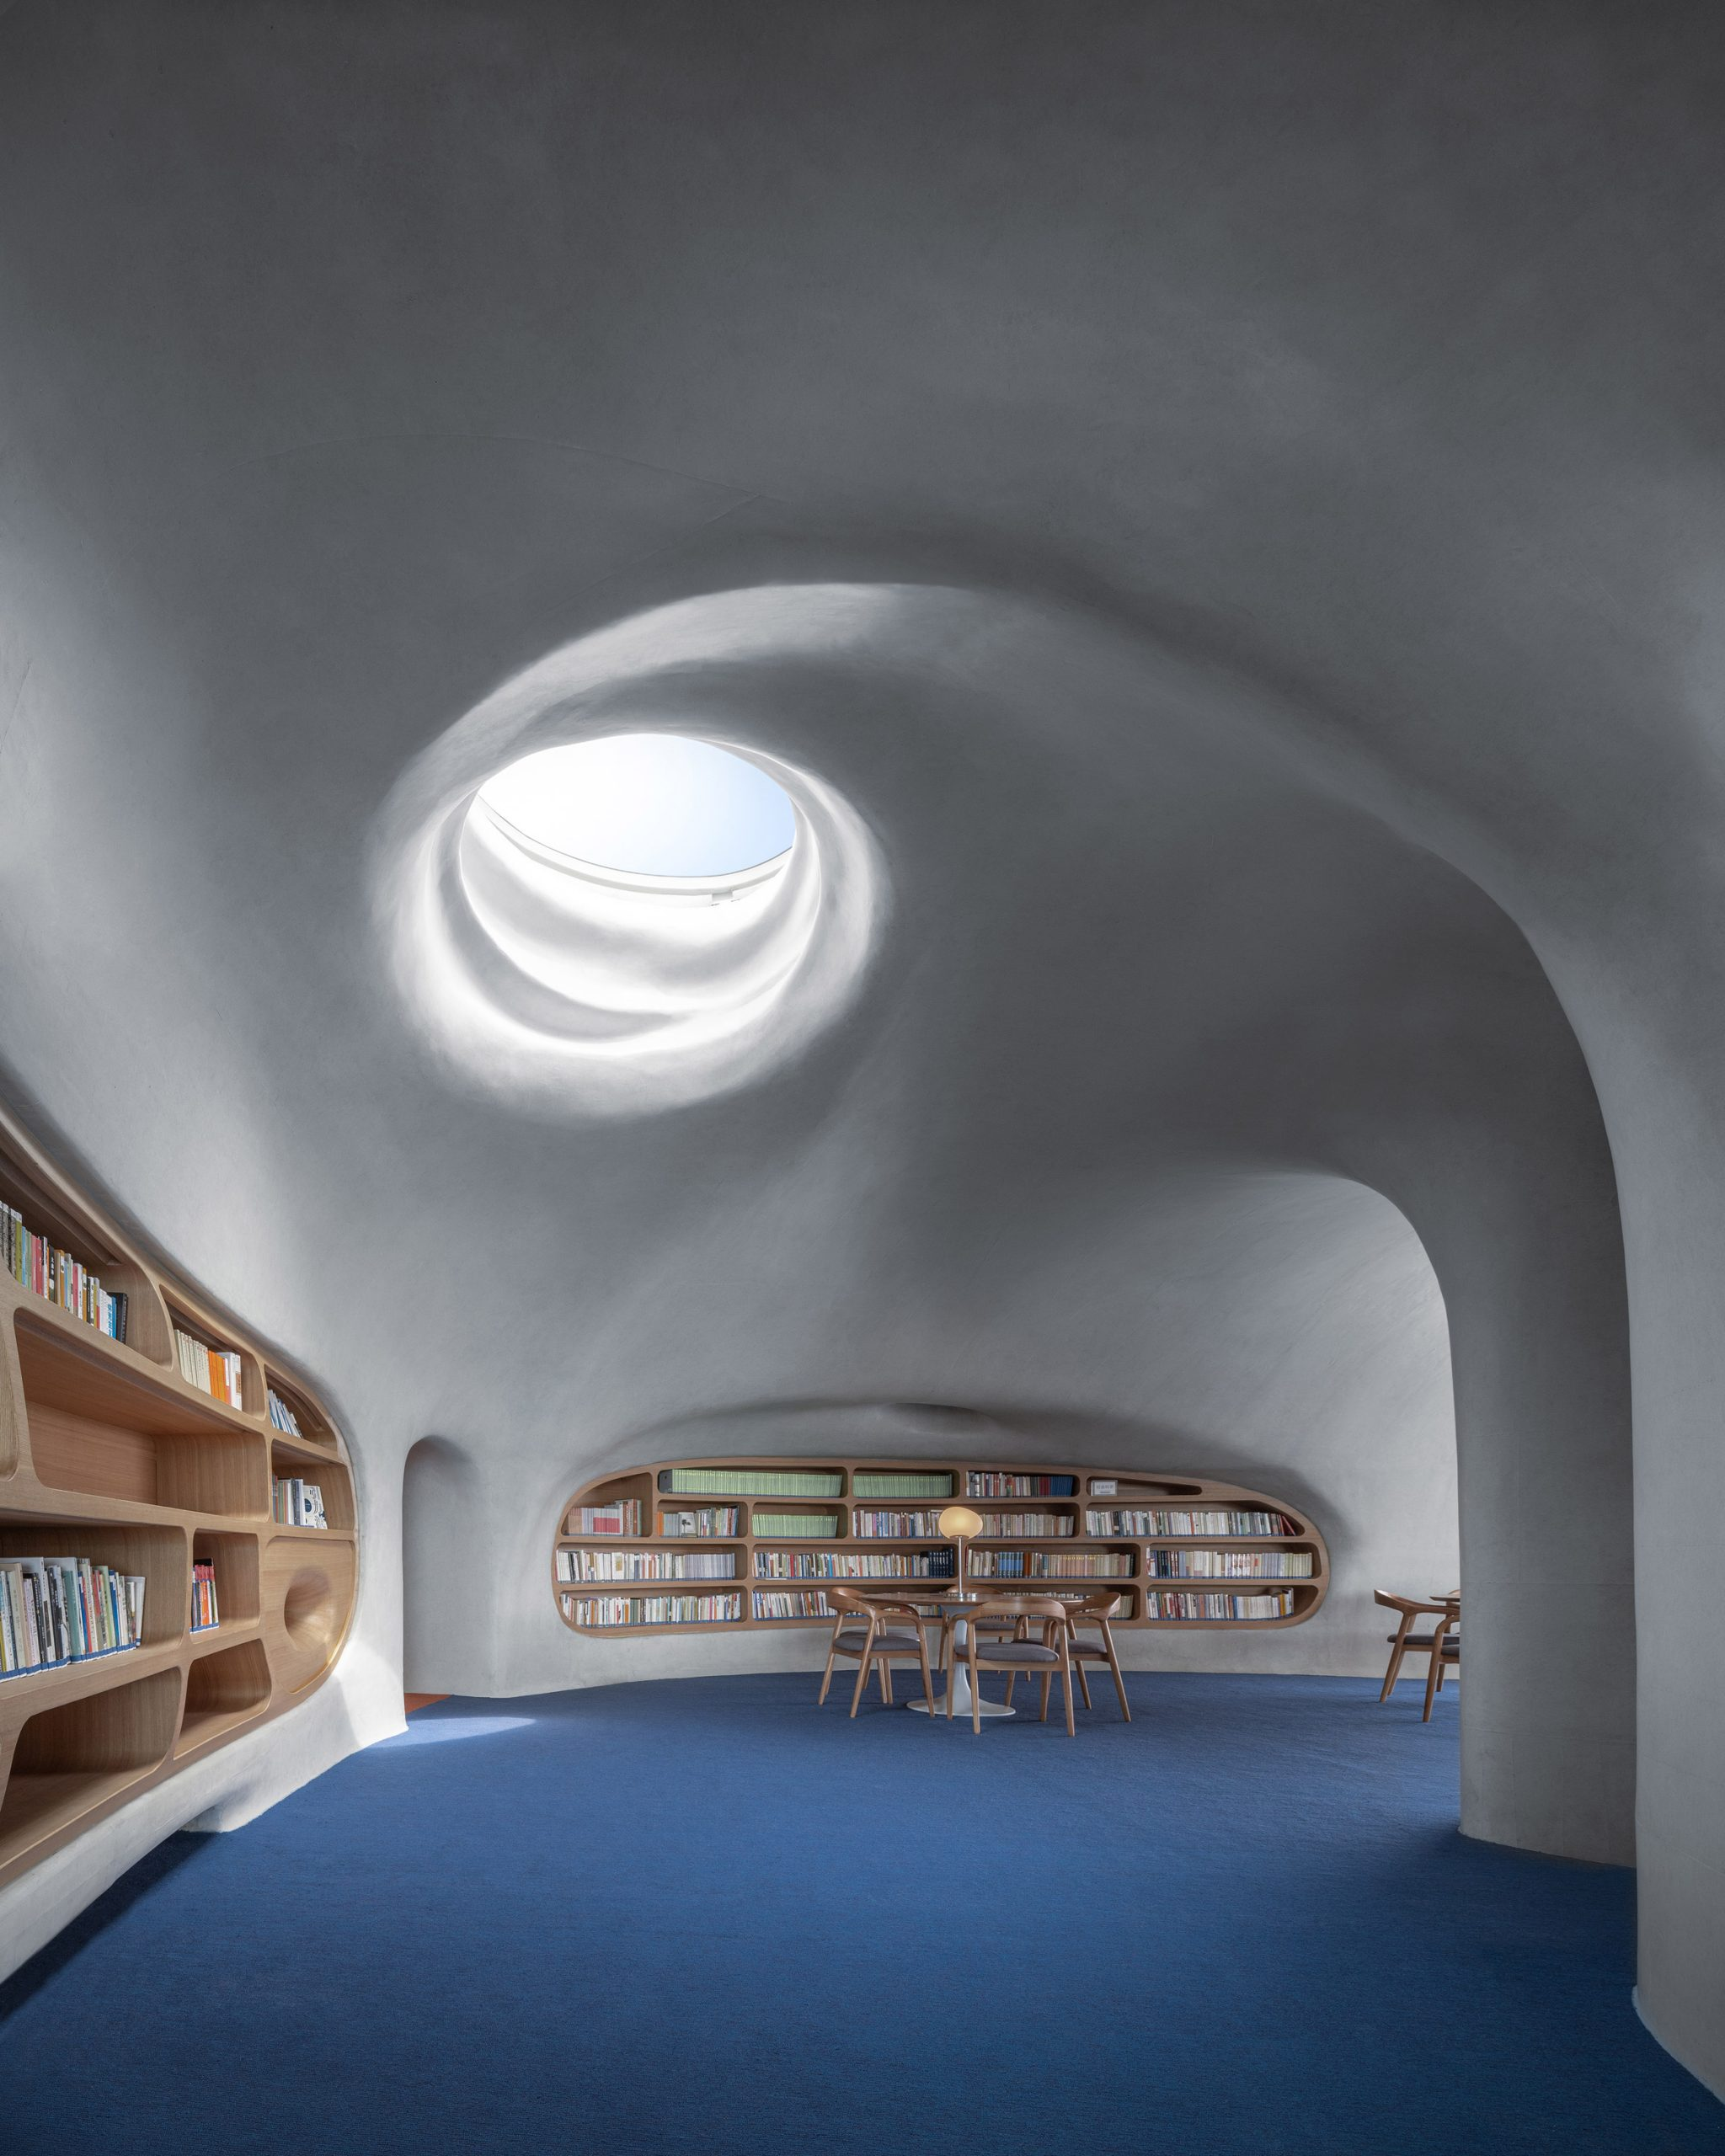 A library lit by a circular skylight